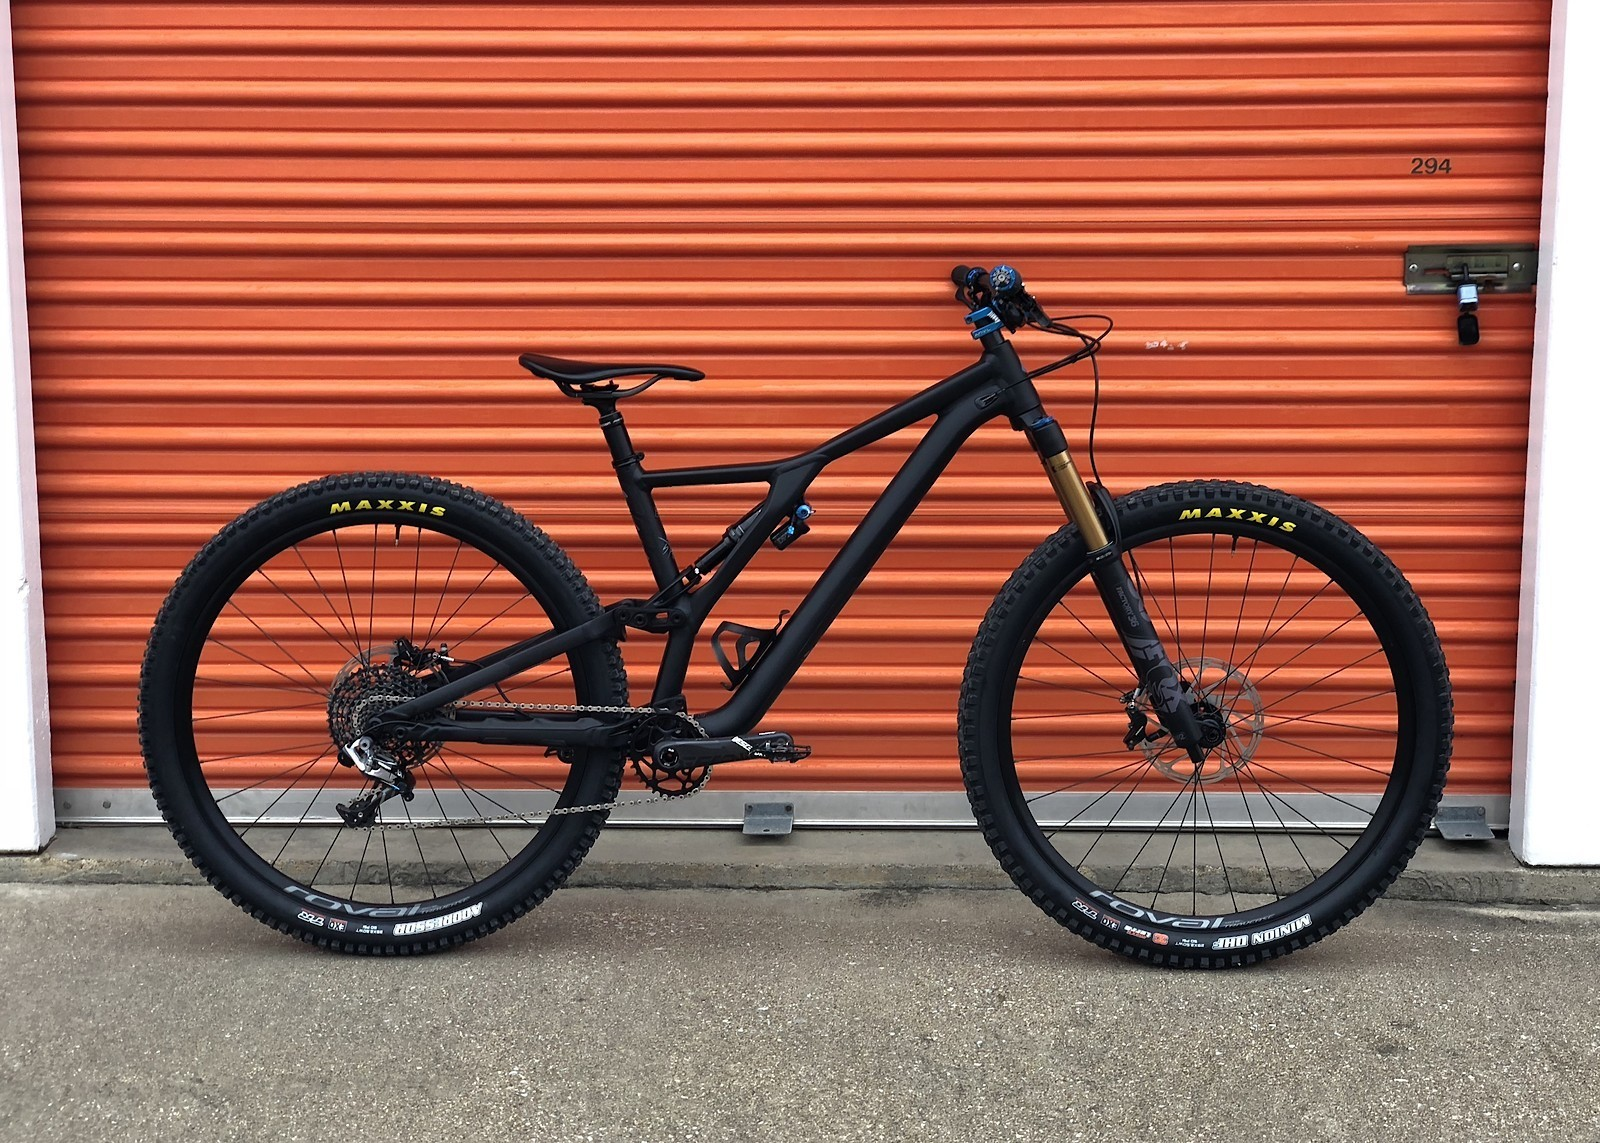 Specialized Stumpjumper EVO 29 - 2019 Vital Bike of the Day Collection - Mountain Biking Pictures - Vital MTB